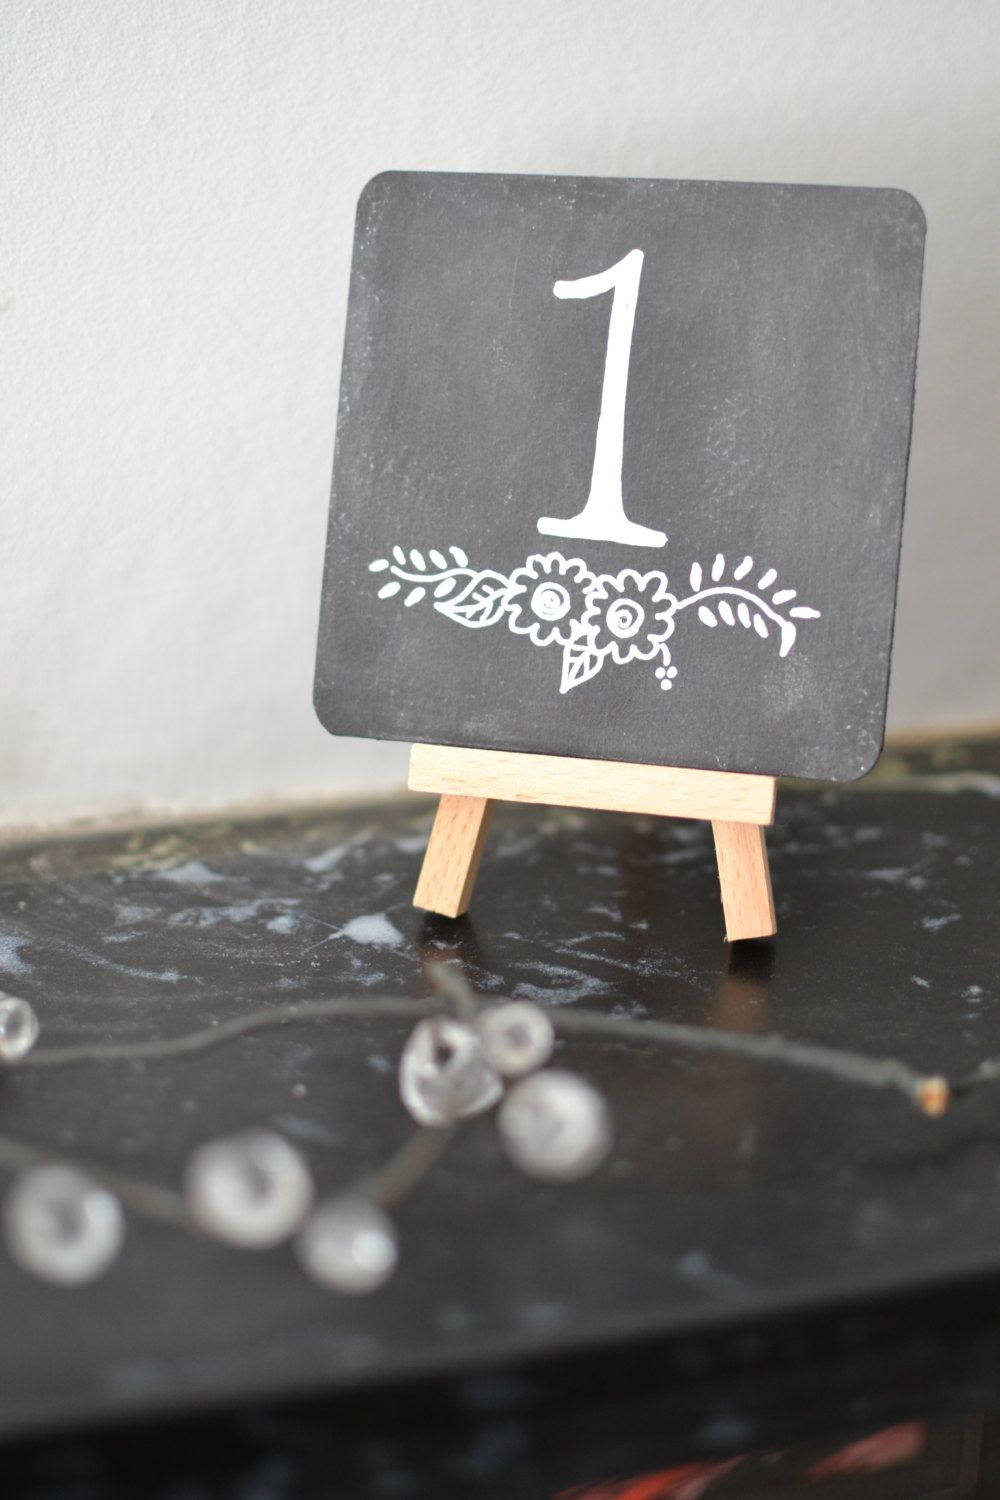 Merveilleux 10 Chalkboard Wedding Table Numbers With Wooden Mini Easel   Hand Lettered    Wedding Table Number Signs, Bespoke Wedding Design, Chalkboards